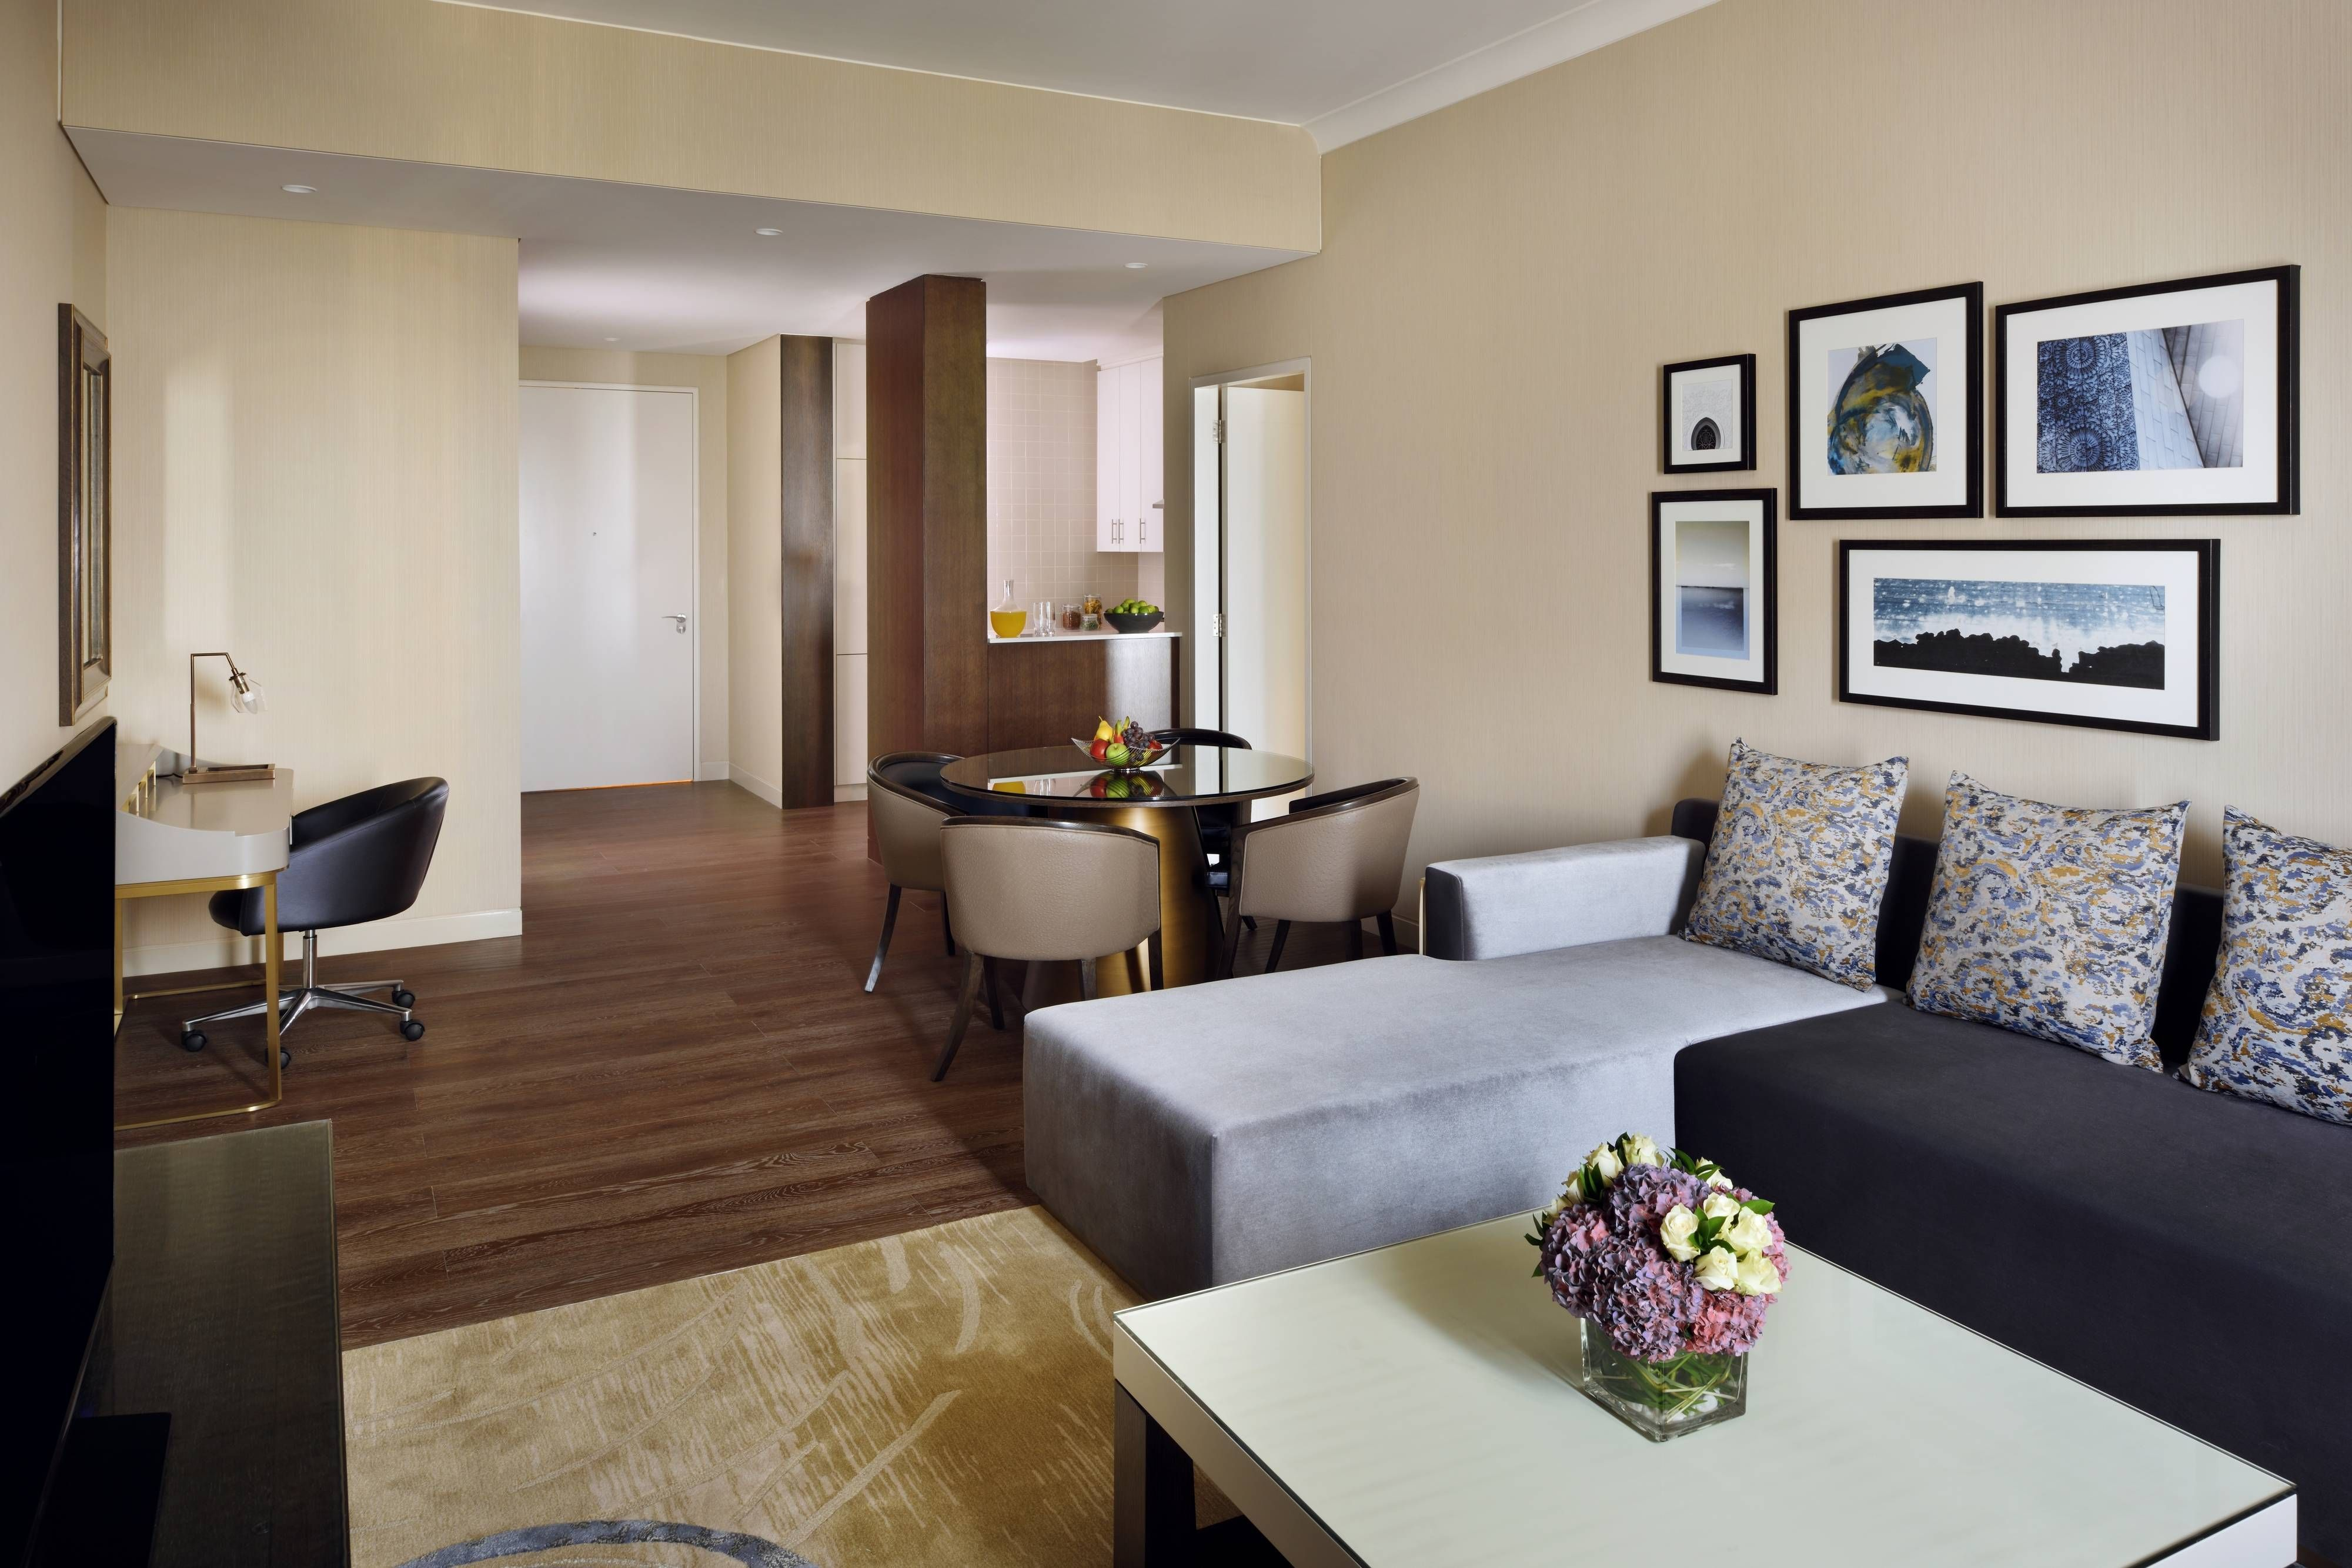 Marriott Executive Apartments Downtown Abu Dhabi One Bedroom Apartment Living Area Relax Holiday Downtown Apartment One Bedroom Apartment Apartment Living